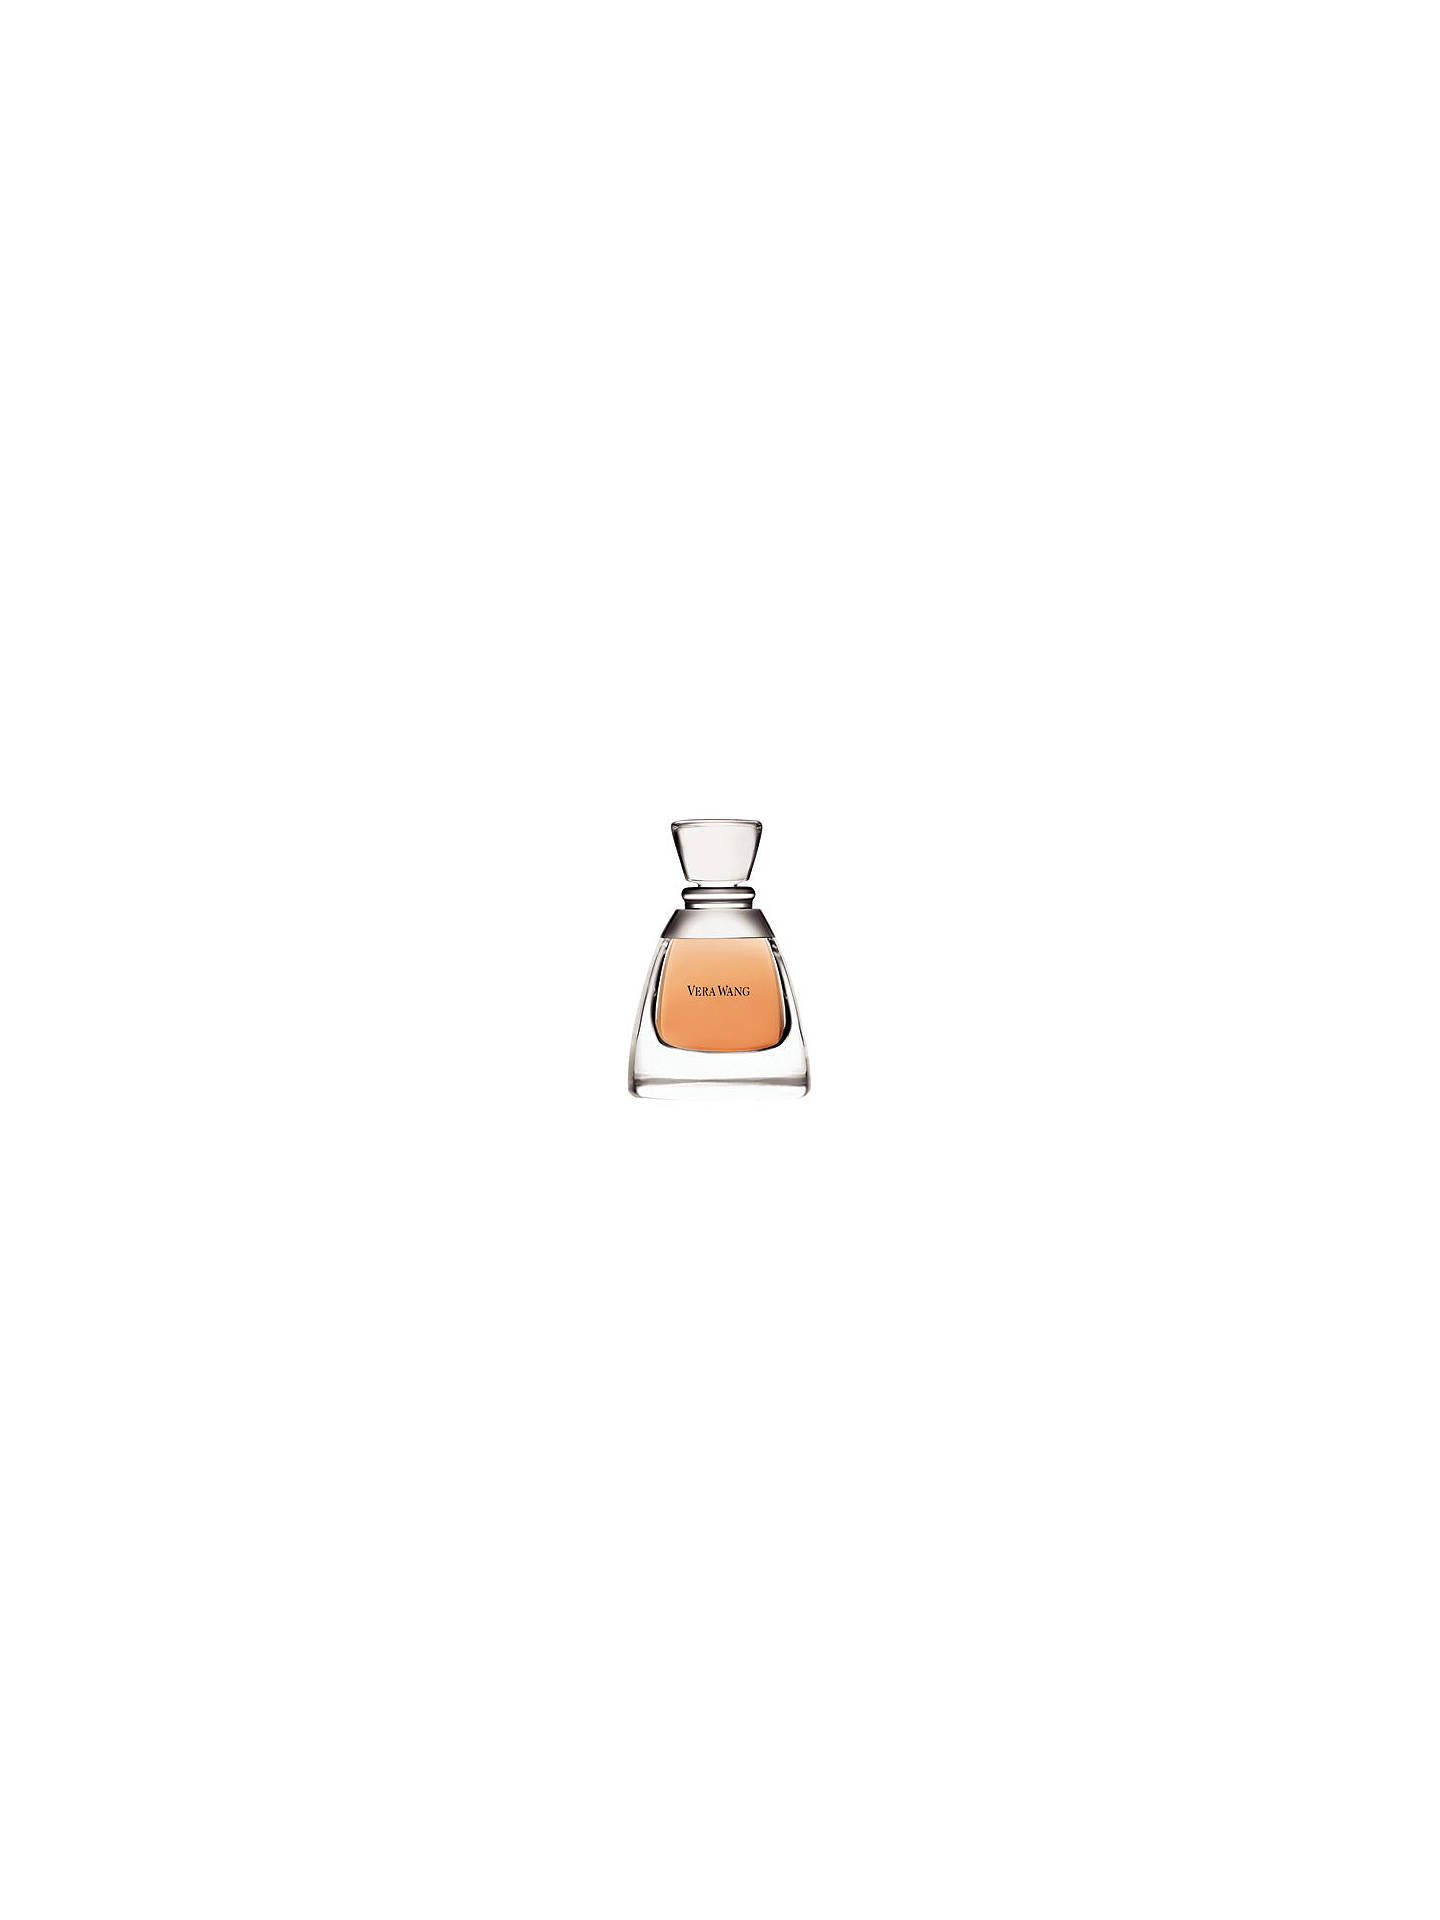 BuyVera Wang for Women Eau de Parfum, 50ml Online at johnlewis.com